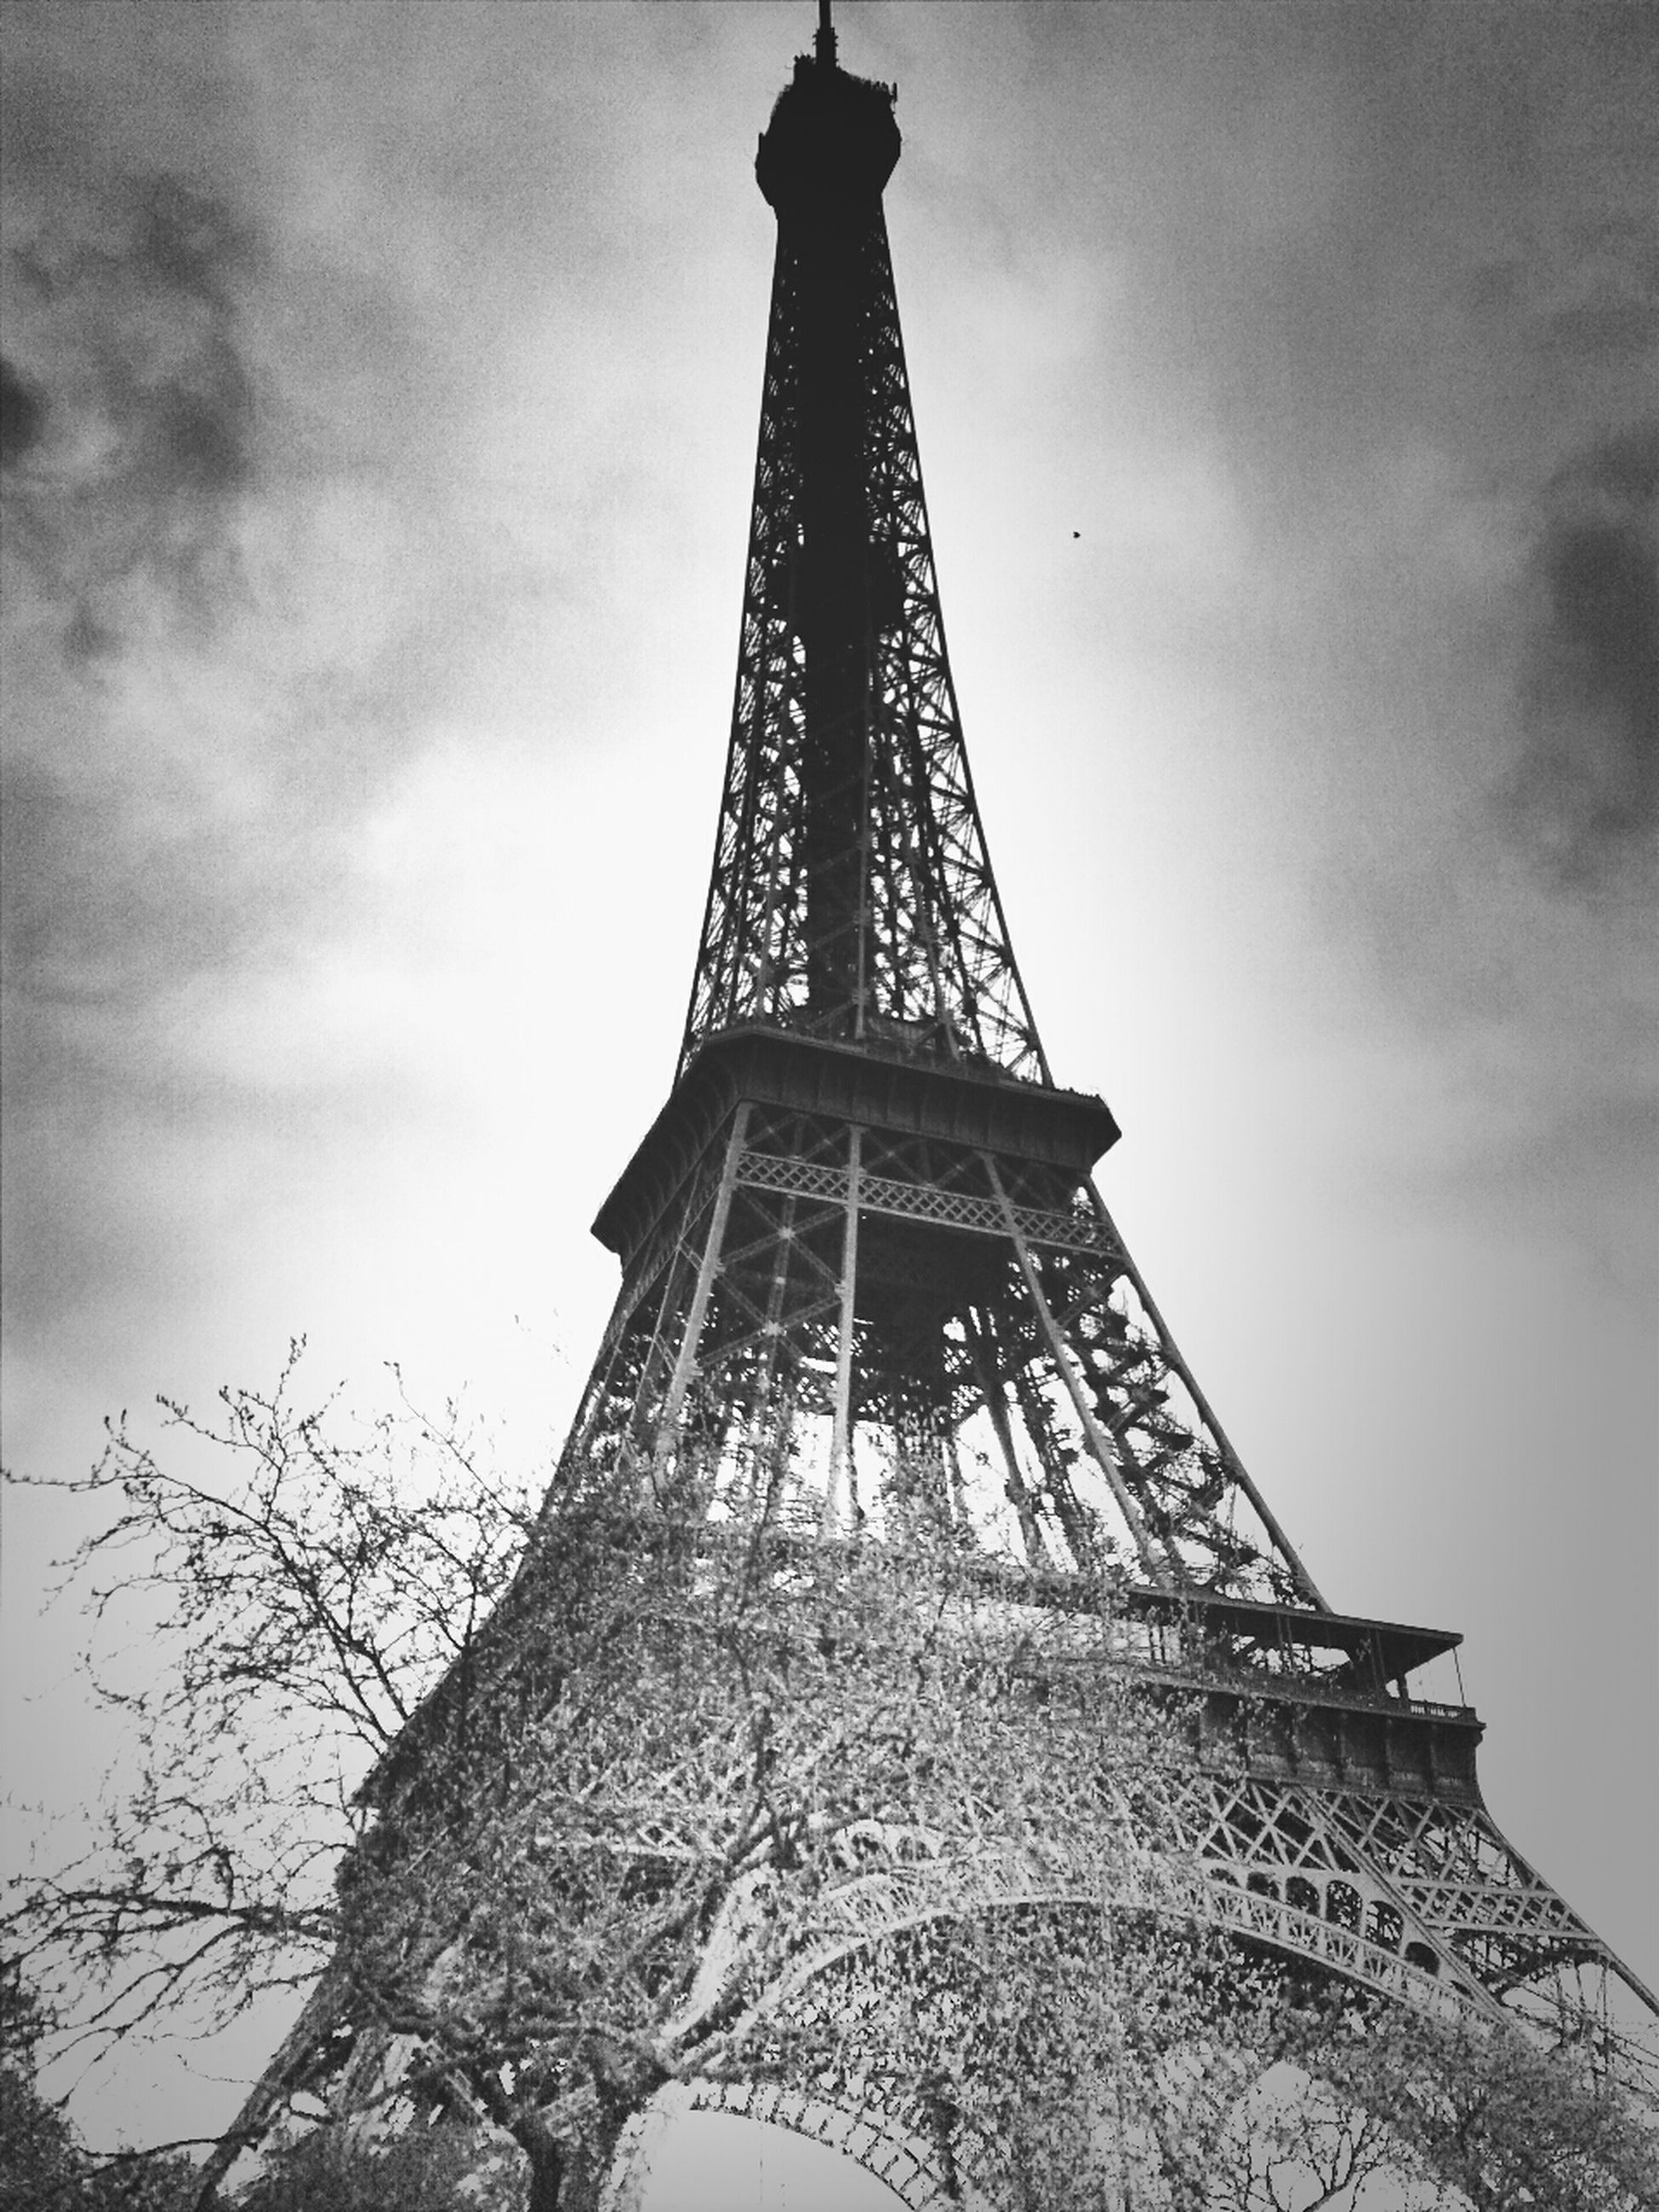 low angle view, eiffel tower, sky, tower, tall - high, built structure, architecture, metal, cloud - sky, culture, international landmark, famous place, metallic, travel destinations, tall, capital cities, cloudy, tourism, history, travel